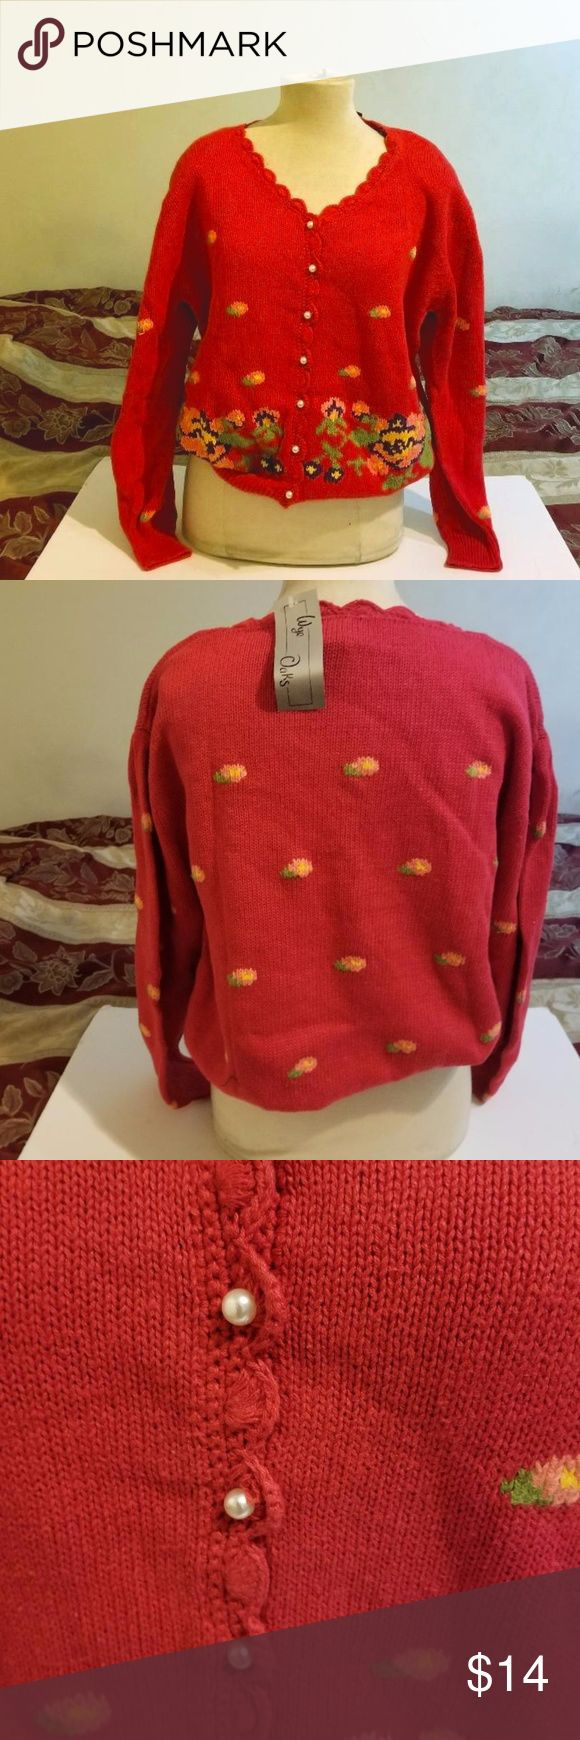 "WYE OAK RED CARDIGAN  SWEATER SZ 20W NEW NWT Brand new with tag red cardigan with pearl buttons size 20W. 45% Cotton, 55% Ramie. Made in Indonesia. Measurements:  Length: 25"" Bust: approx 48 -49"" around WYE OAKS Sweaters Cardigans"